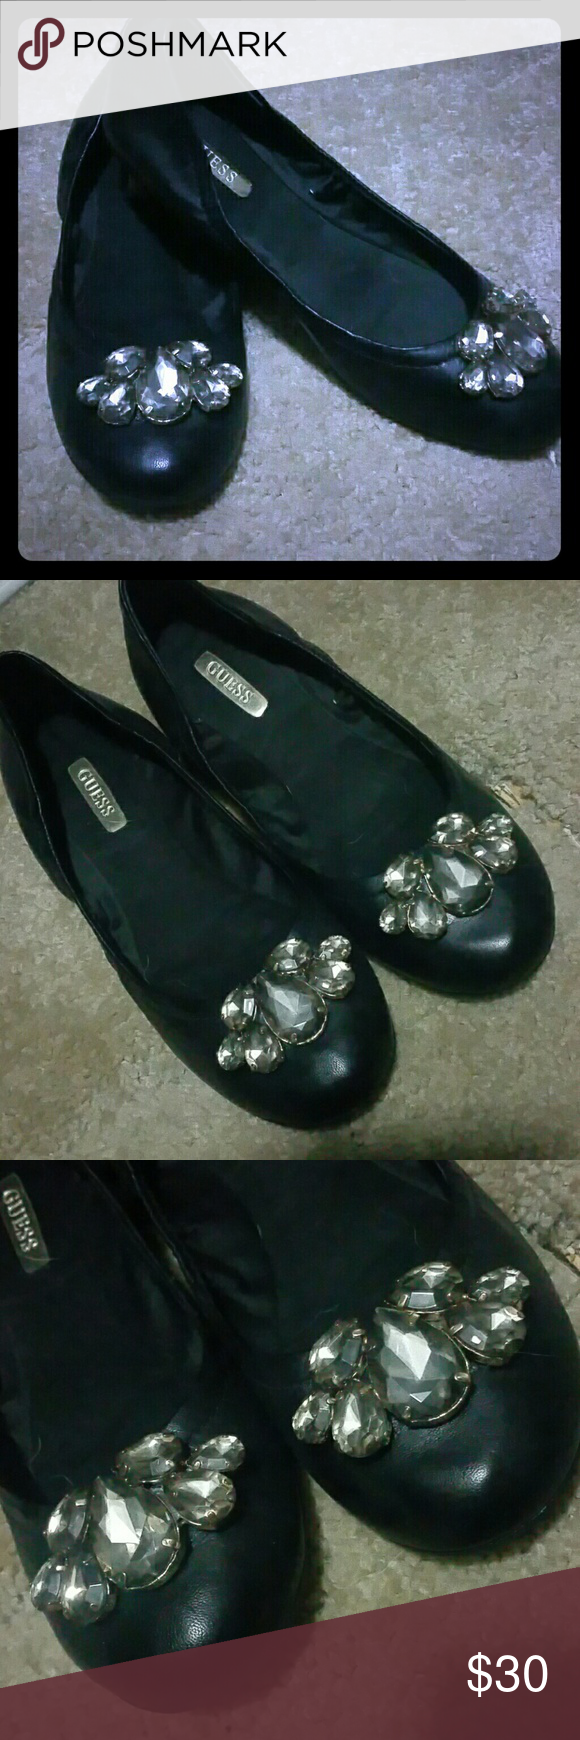 Guess Ballet Flats Never been used. Guess Shoes Flats & Loafers